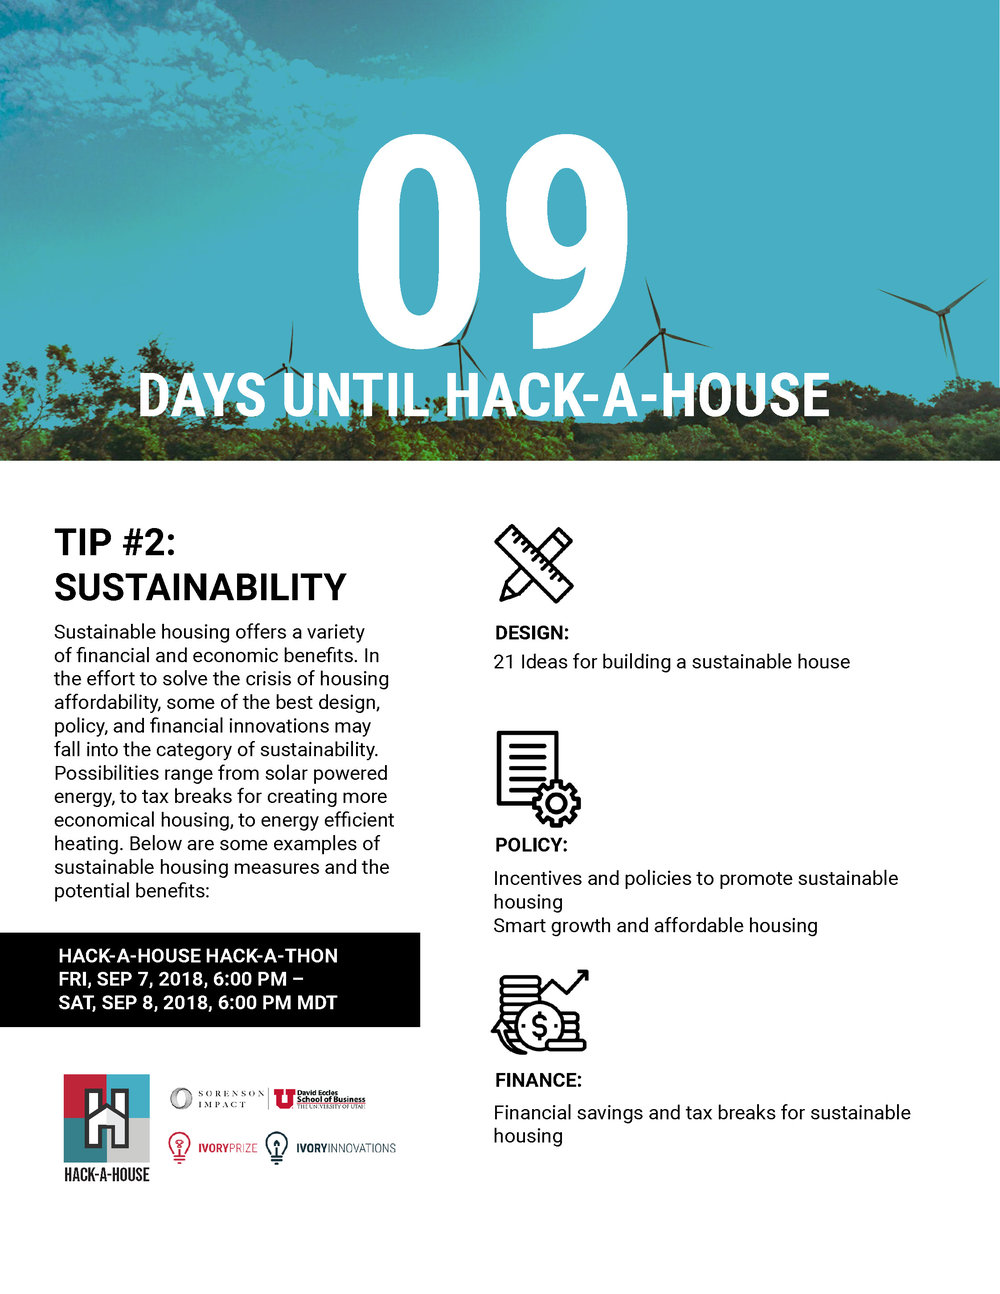 daily tips for hack a house! \u2014 ivory innovationshack a house countdown_02 jpg